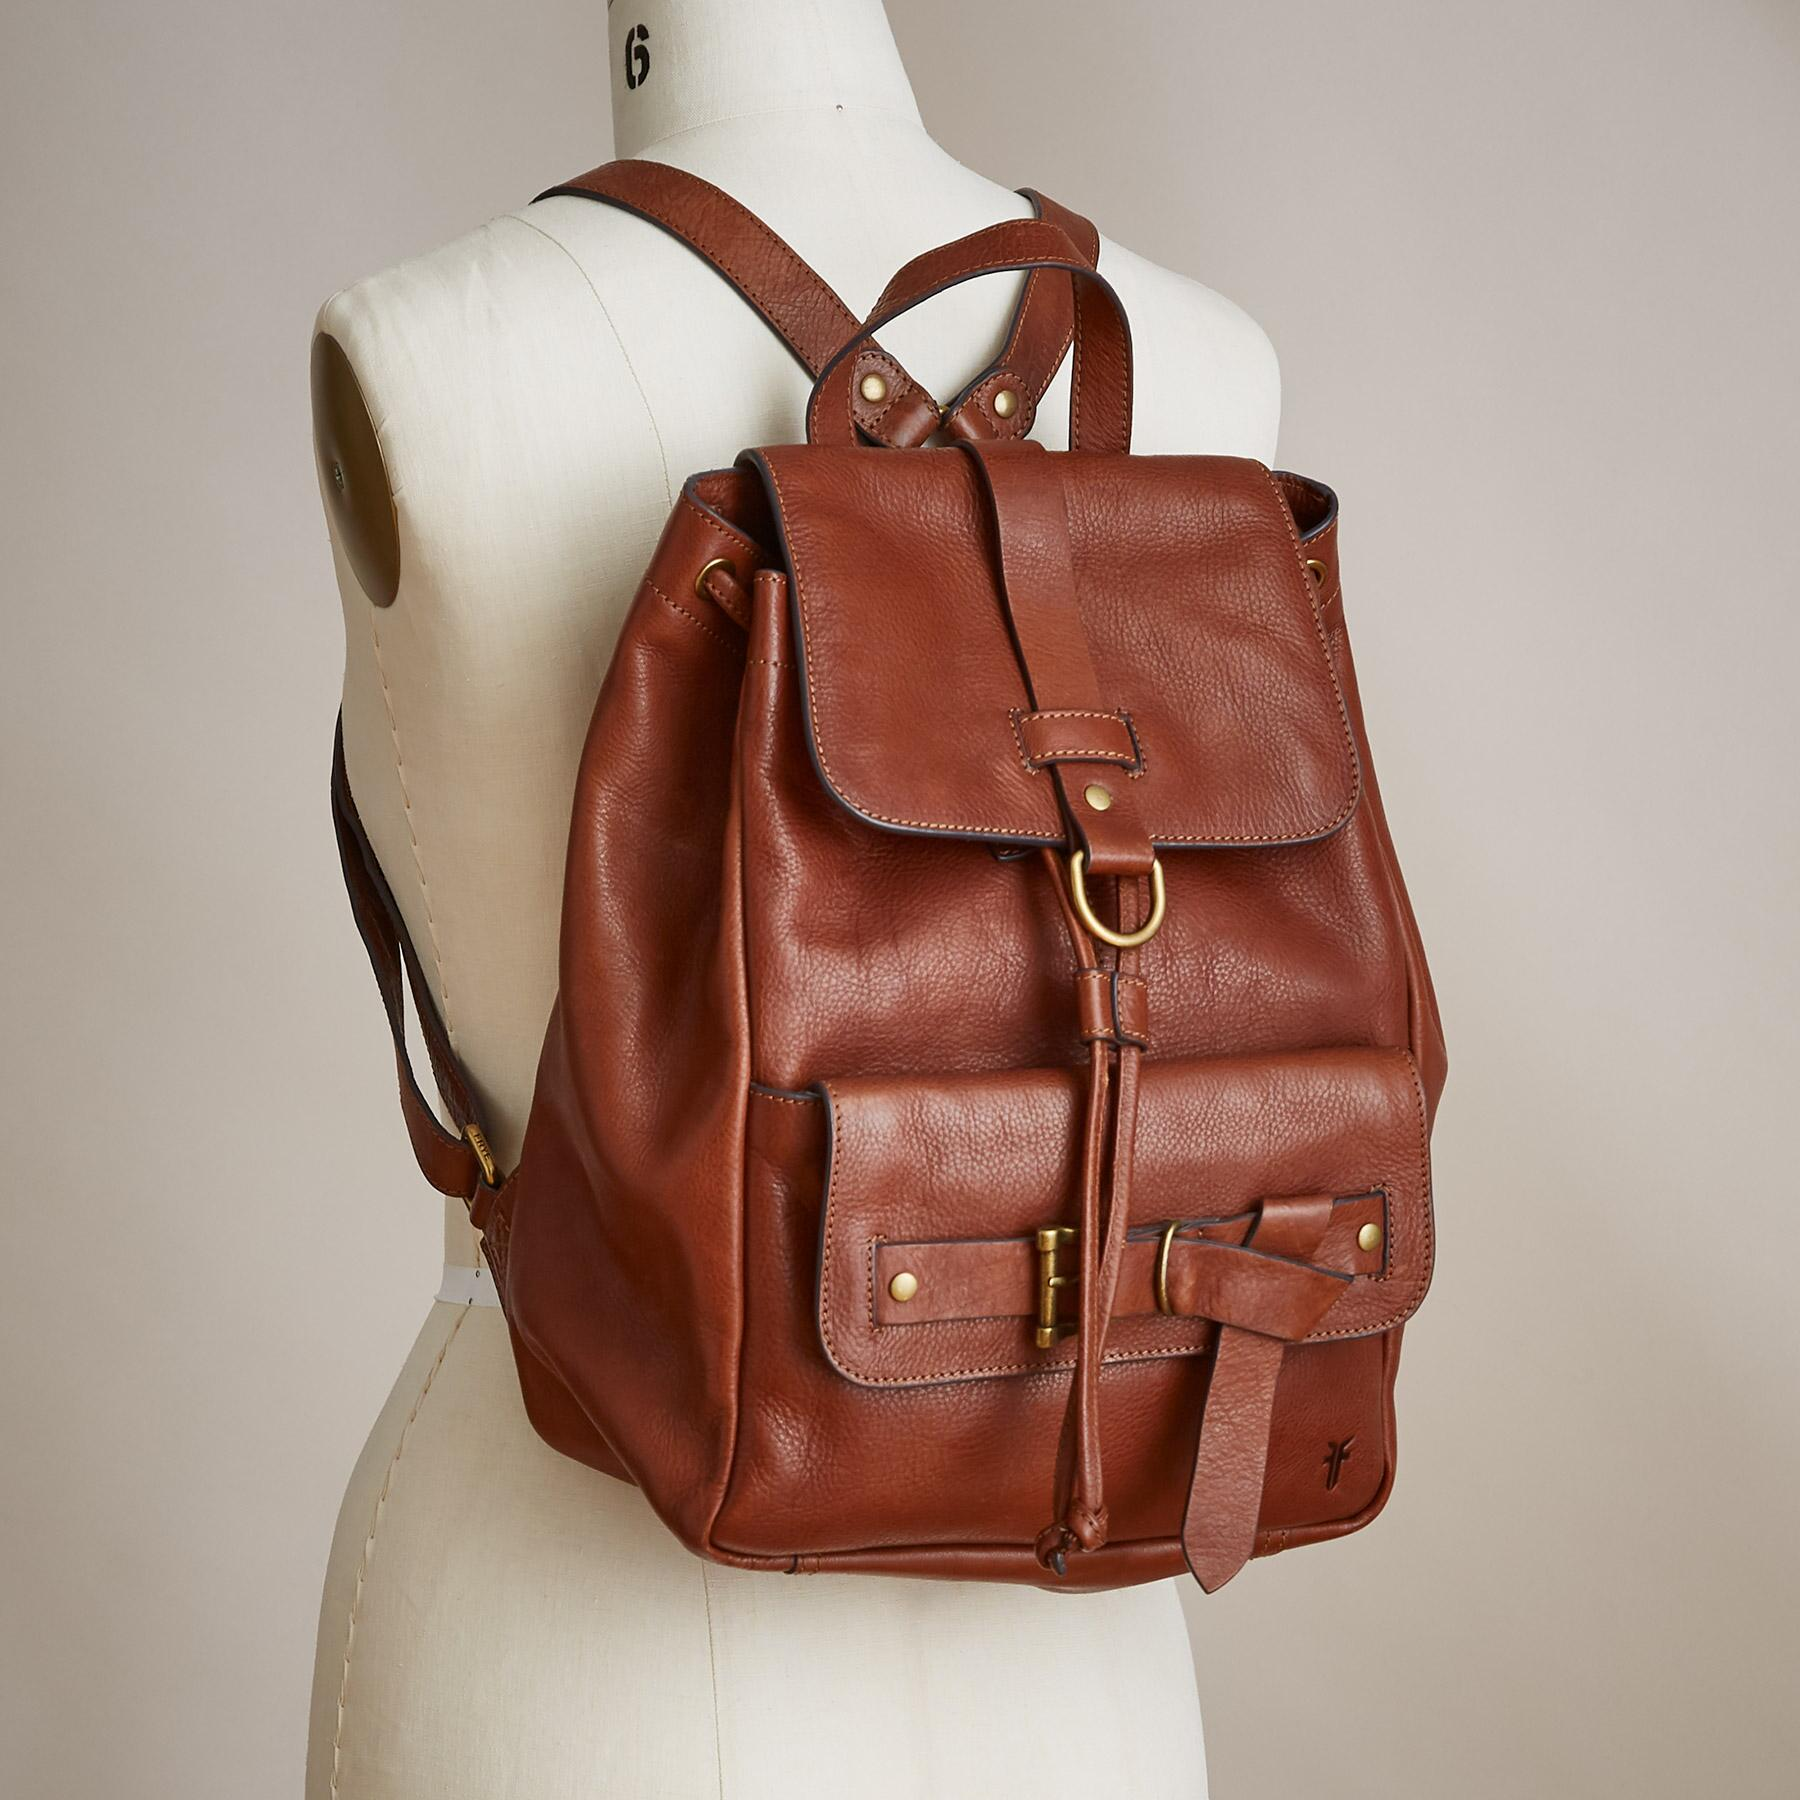 Kayla Backpack By Frye®: View 4